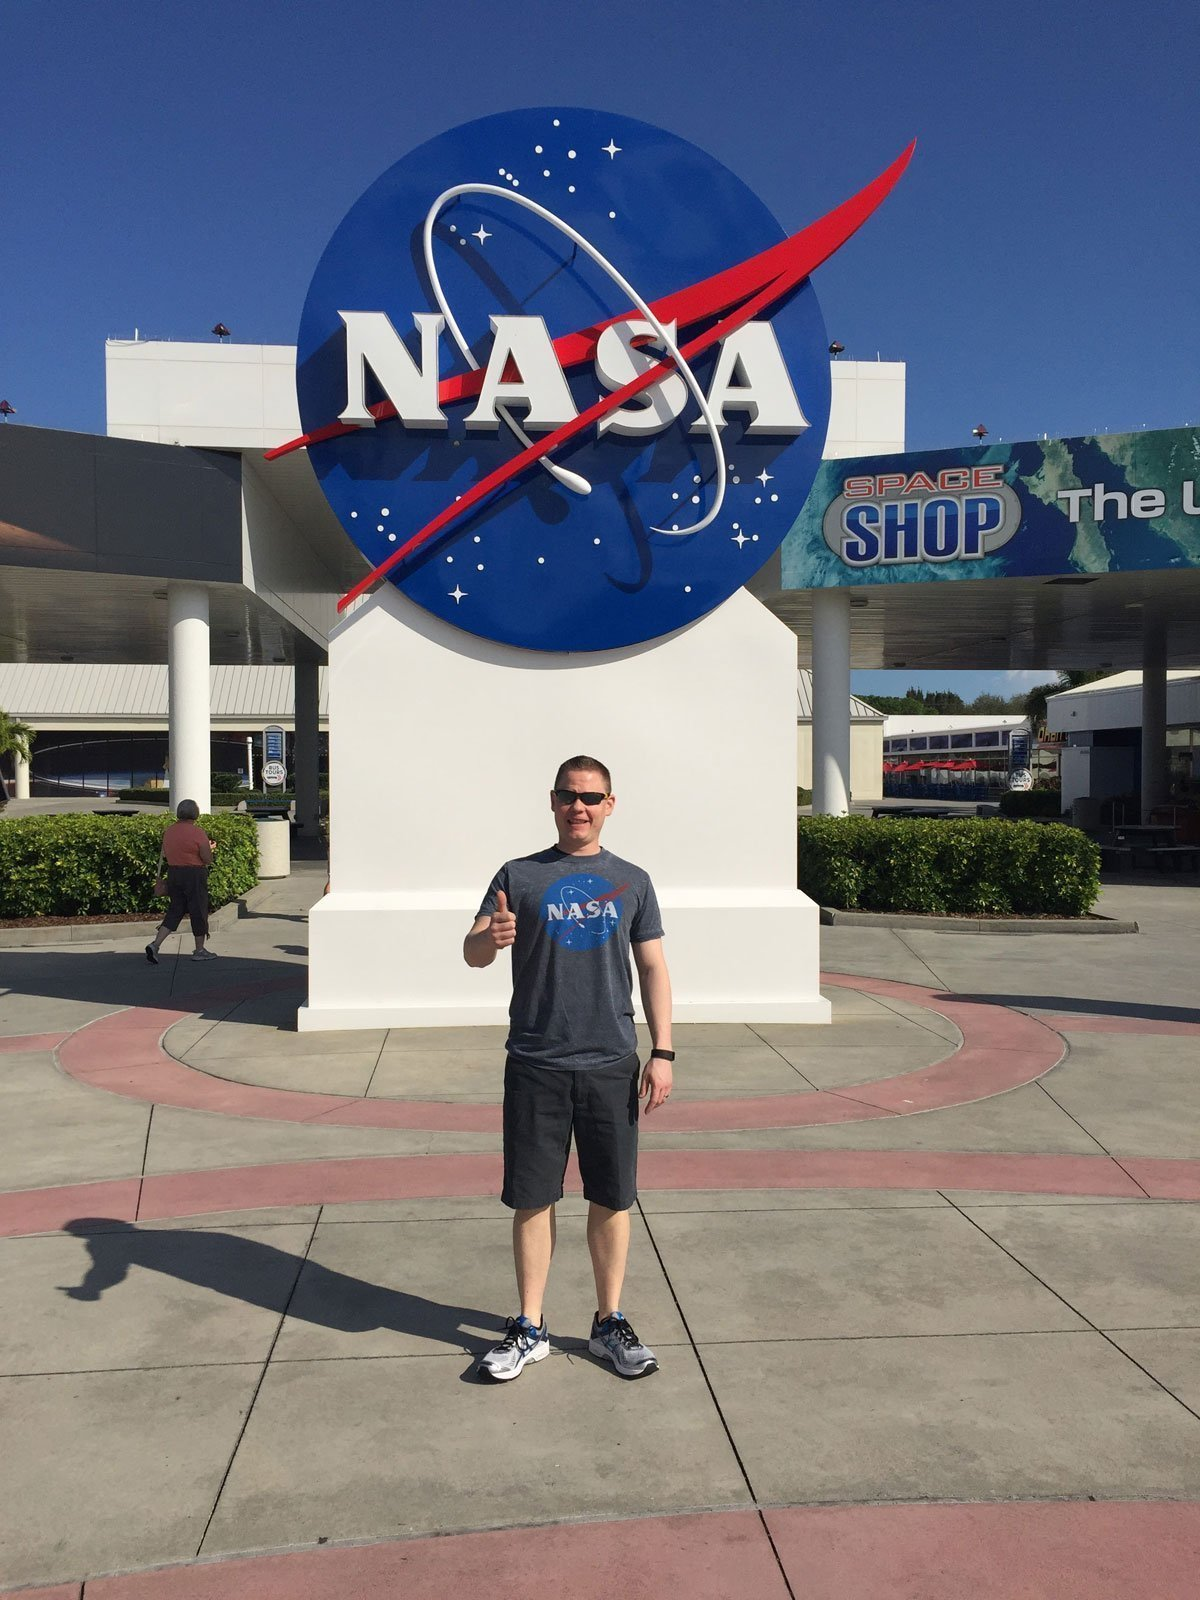 NASA sign at Kennedy Space Center